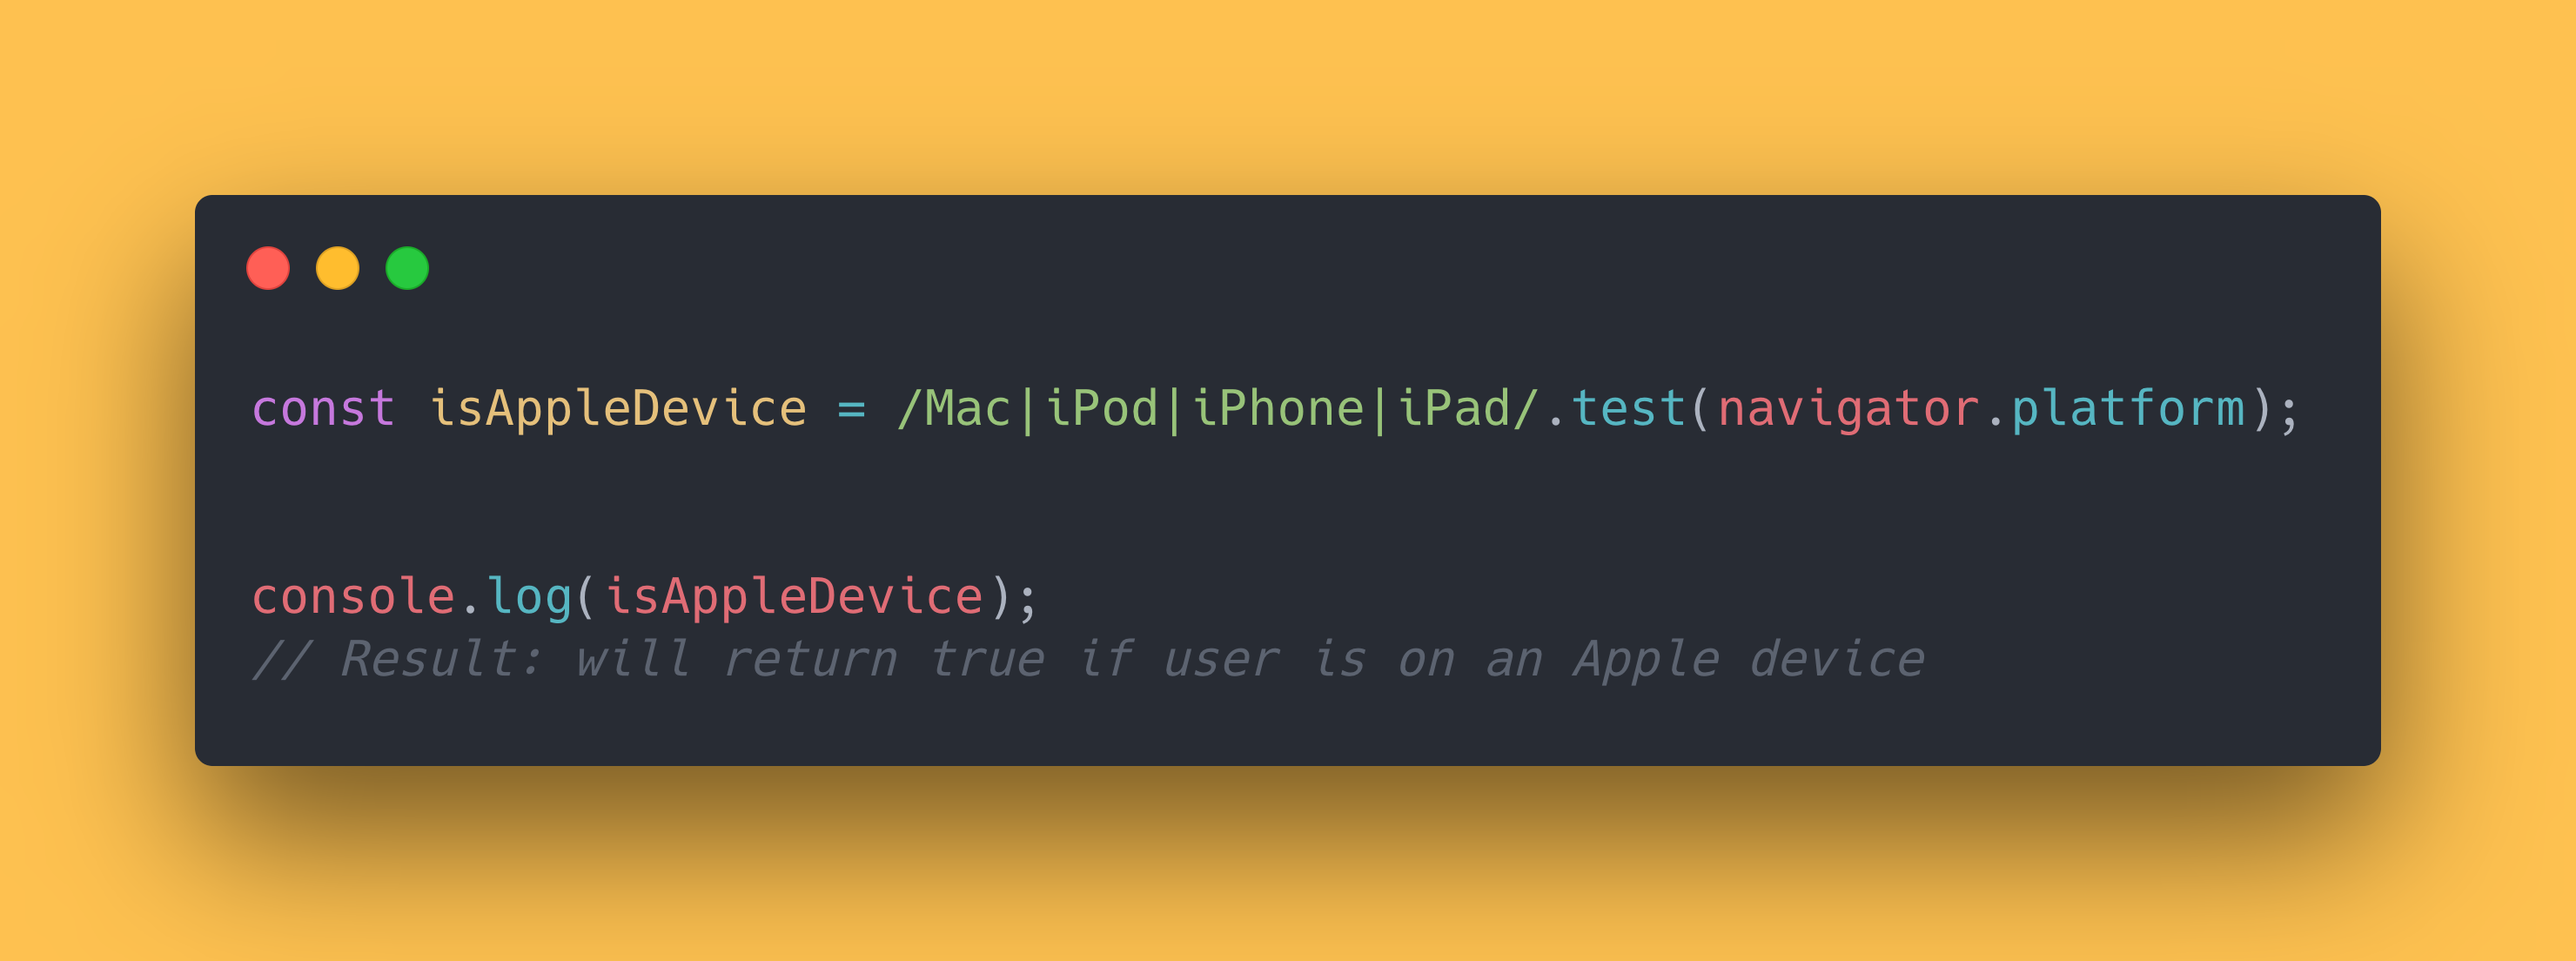 JS code block showing how you can check if the user is currently on an Apple device.